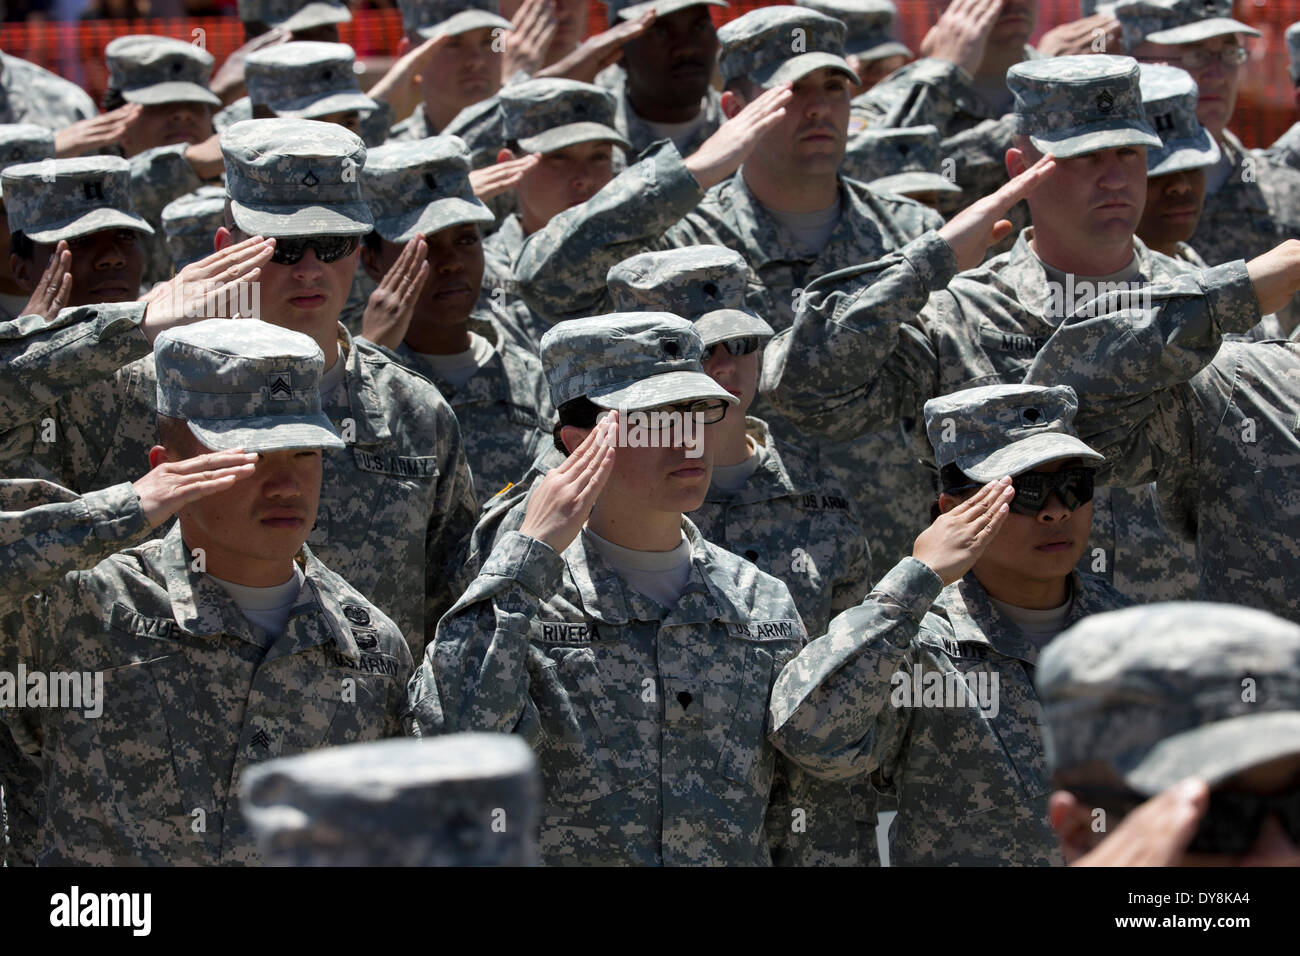 U.S. Army soldiers salute during memorial service for fellow soldiers killed in shooting at Fort Hood Army Post in Texas - Stock Image